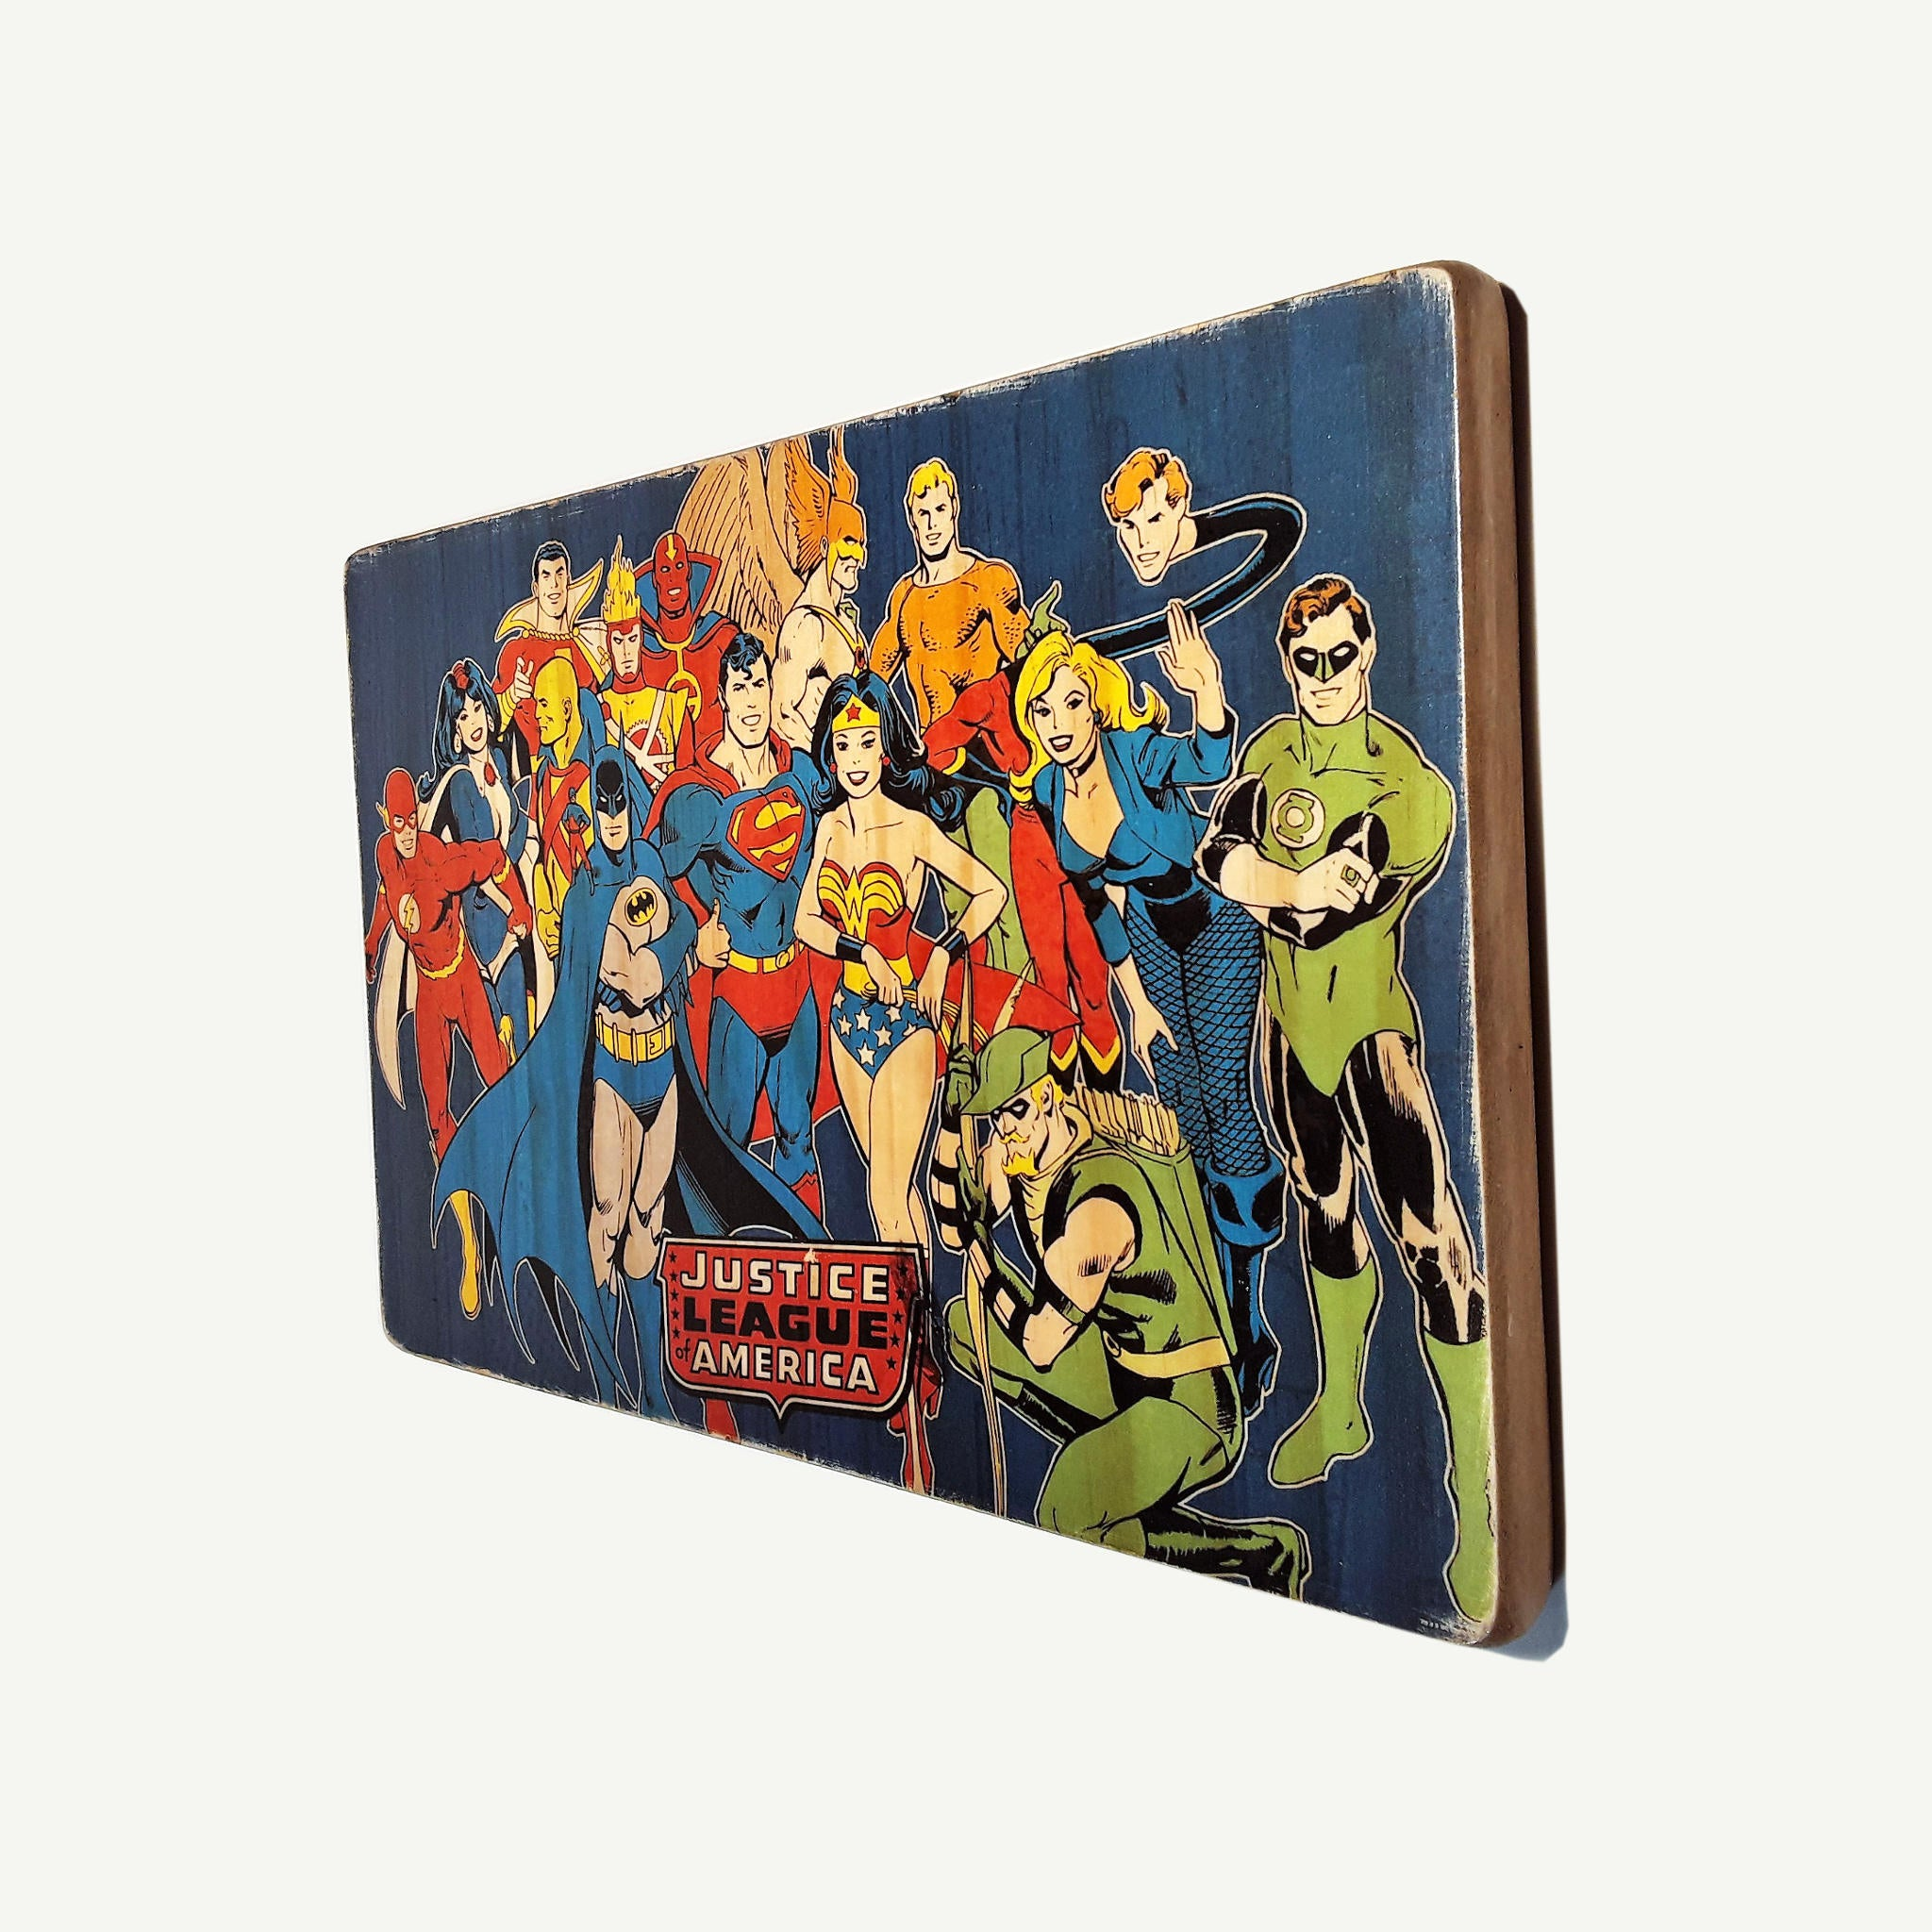 Justice League- Recycle Art - artisanal wood print - https://artesanalwoodprint.com